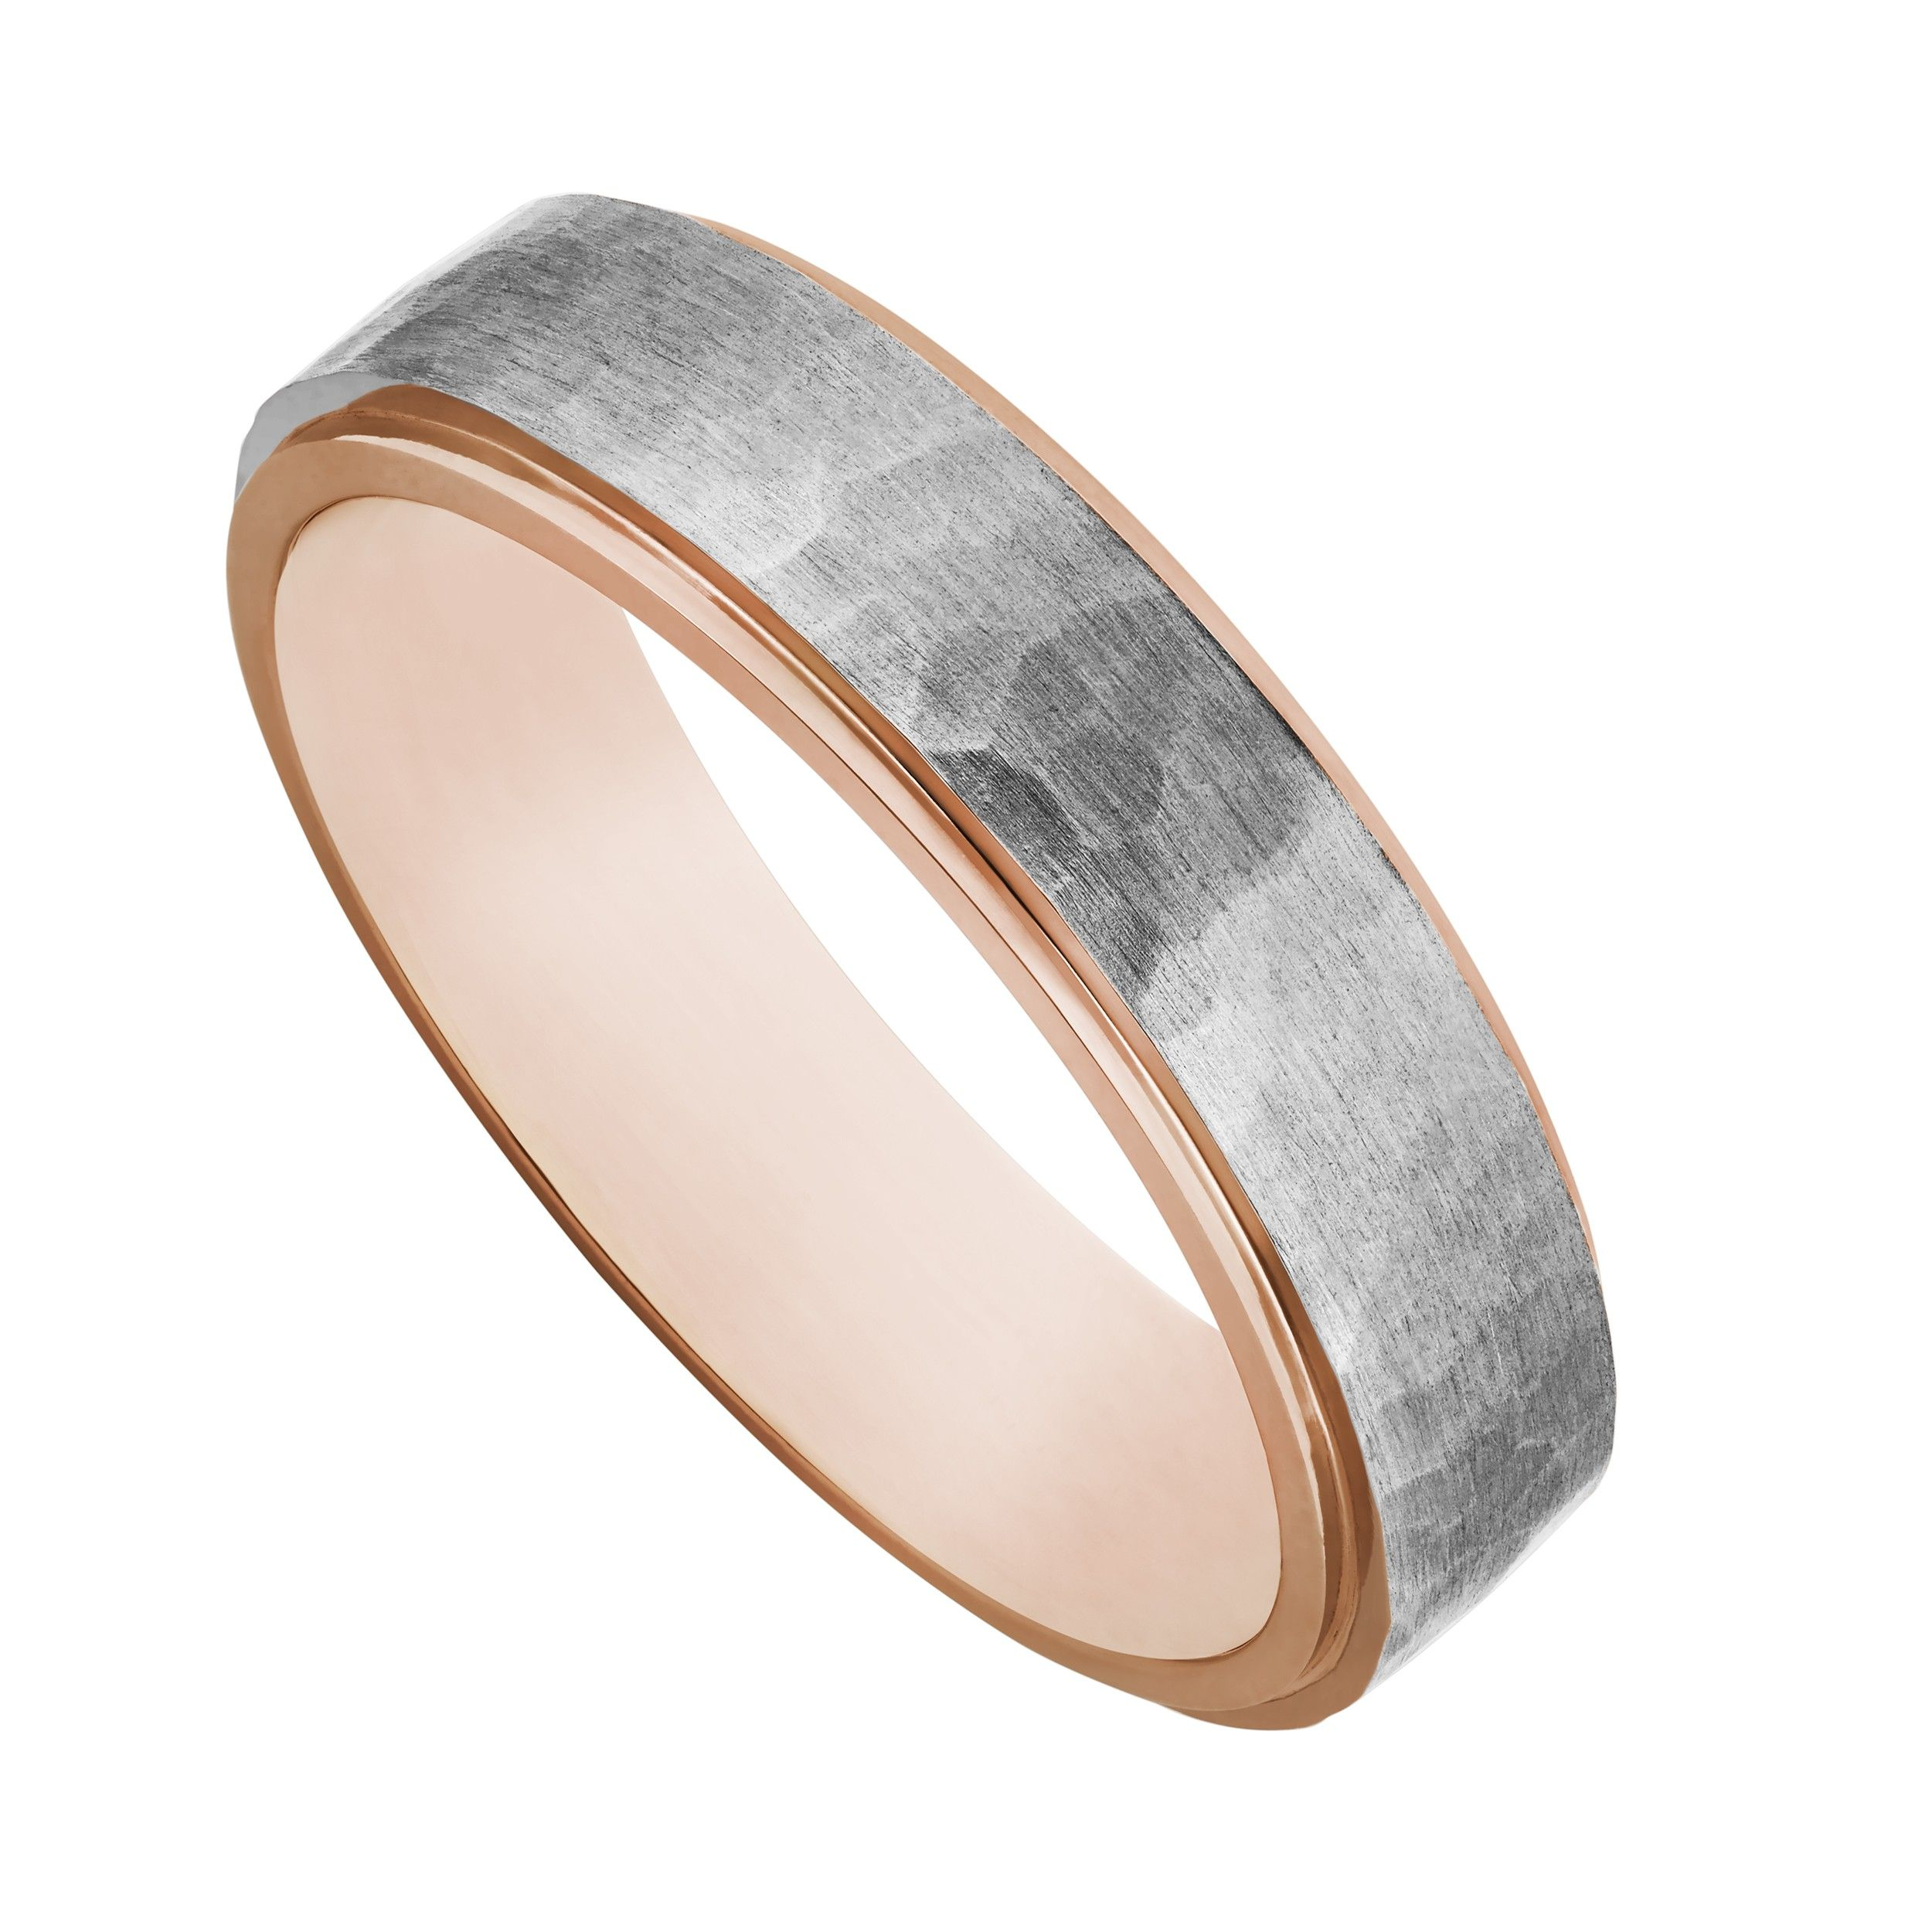 rings two wedding ring uk band titanium at patterned tone p elma